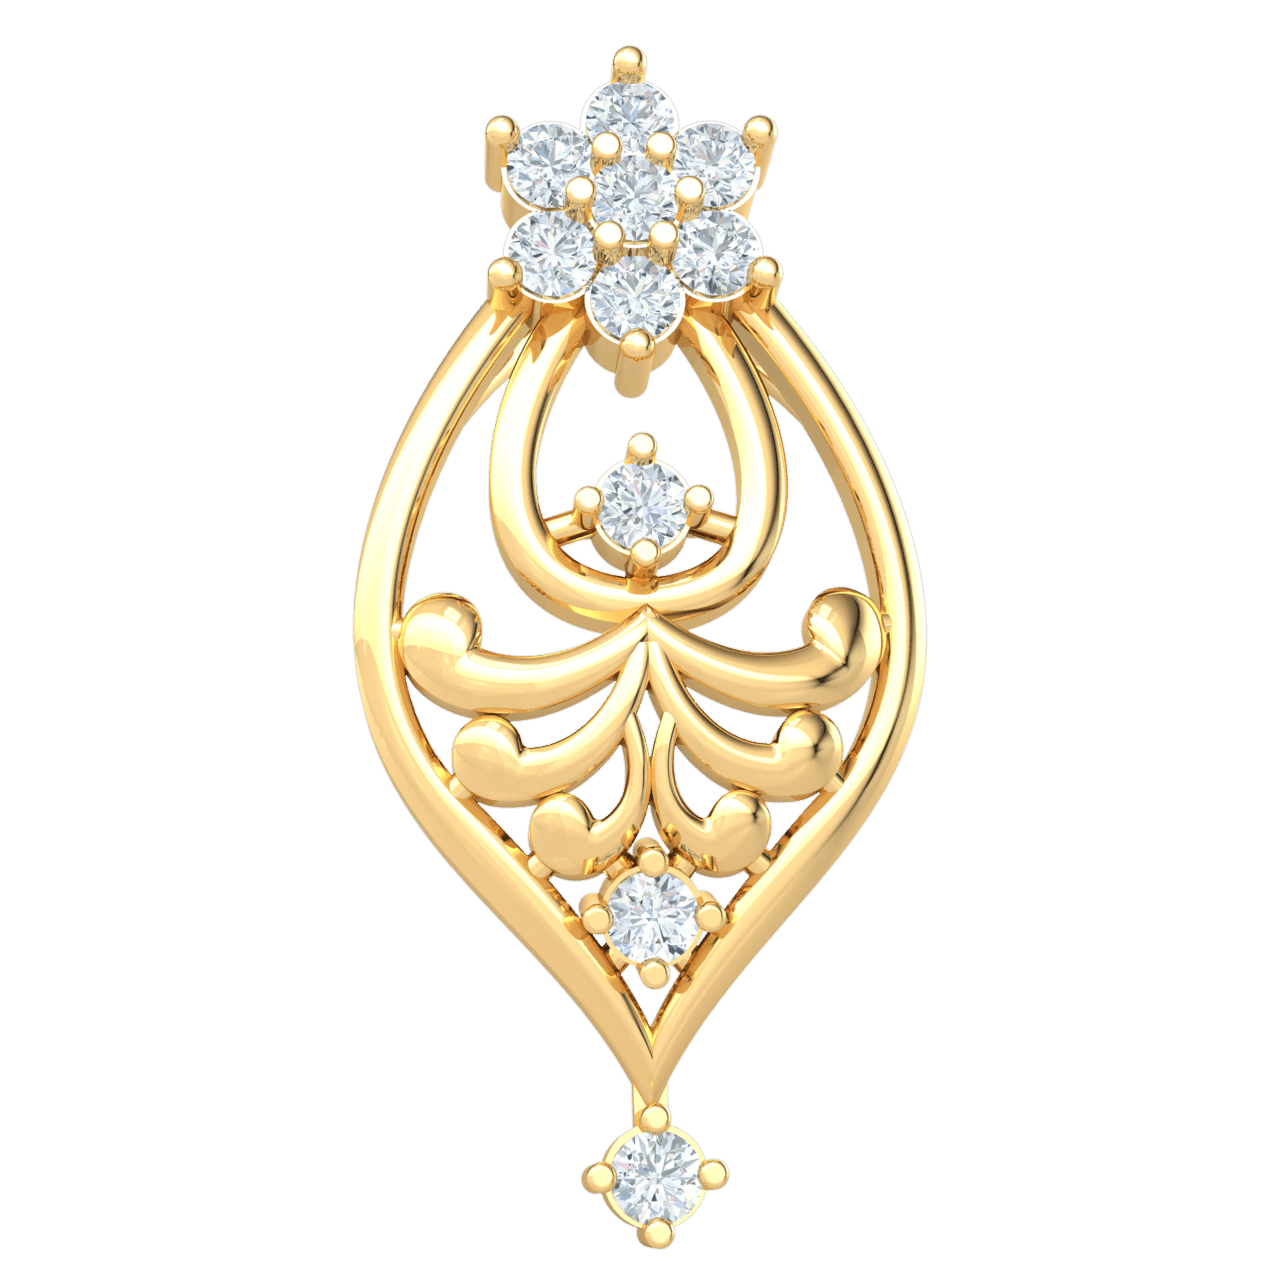 0.15 Ct JK I1 Dazzling 7 Stone White Diamond Pendant Set On A Charming Array Of Real And Diamonds in 10 kt Gold